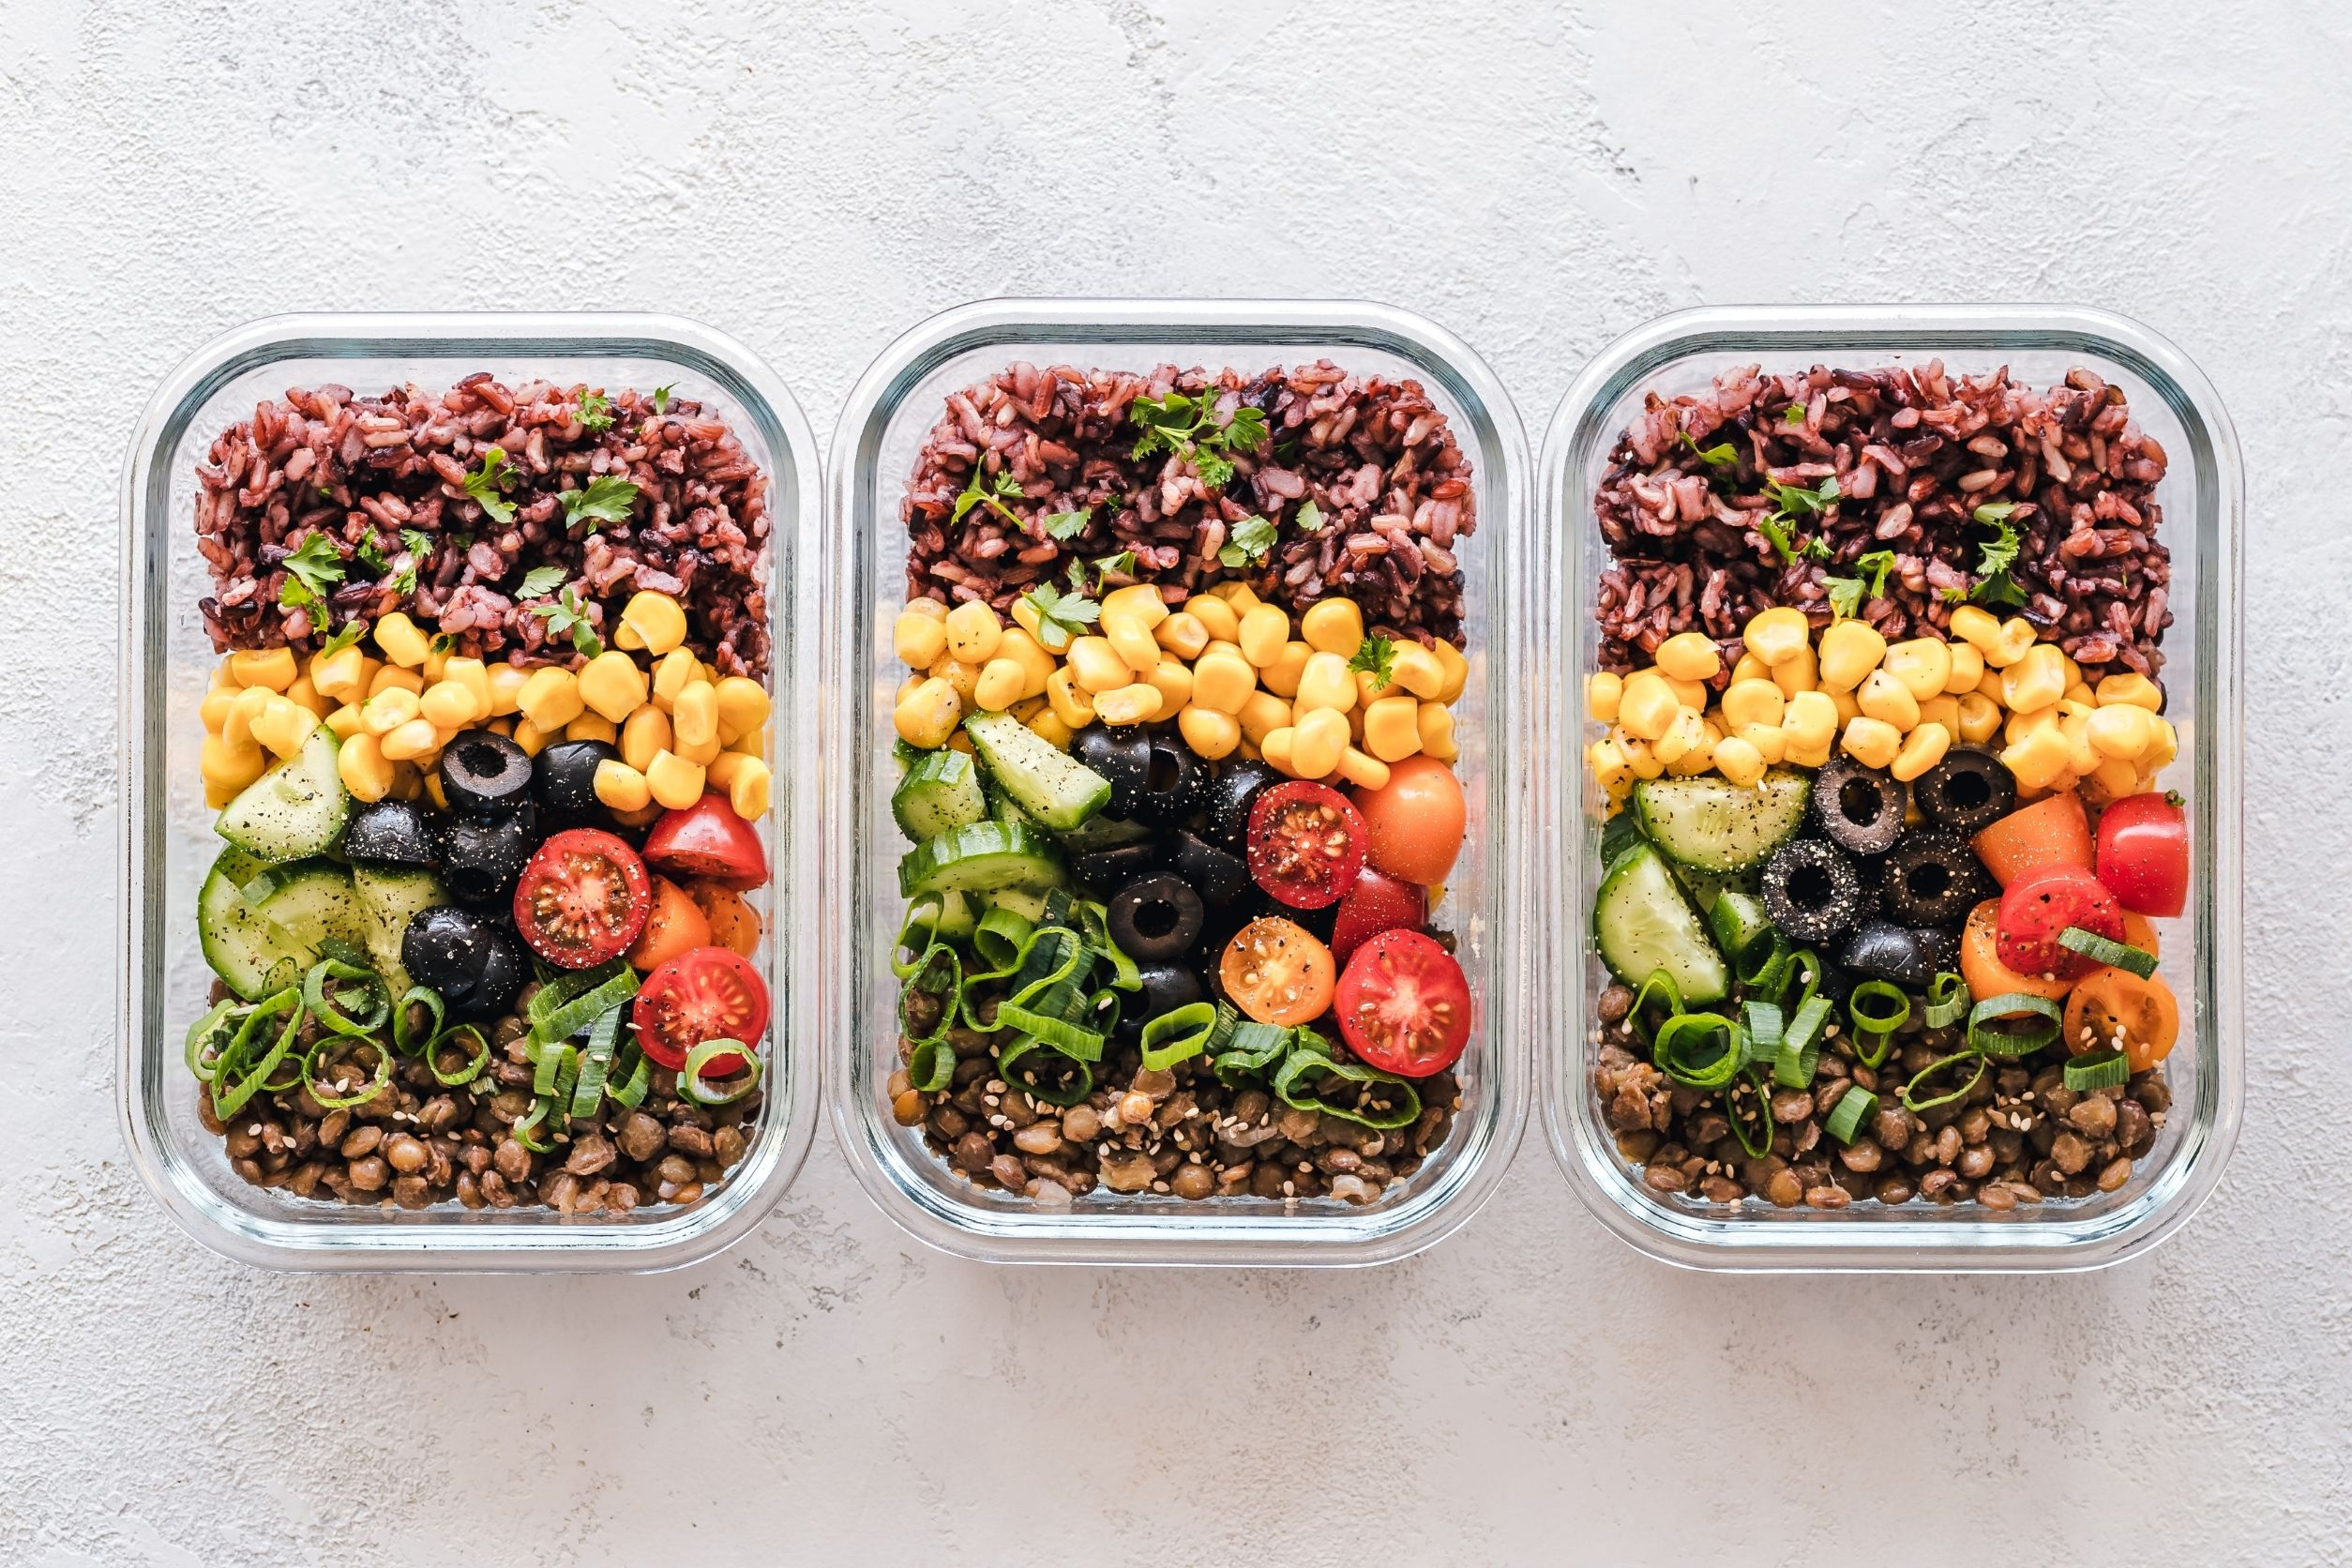 Food in containers to do a portion control diet. Meal prep meals. Healthy meals with rice, chickpeas, tomatoes.